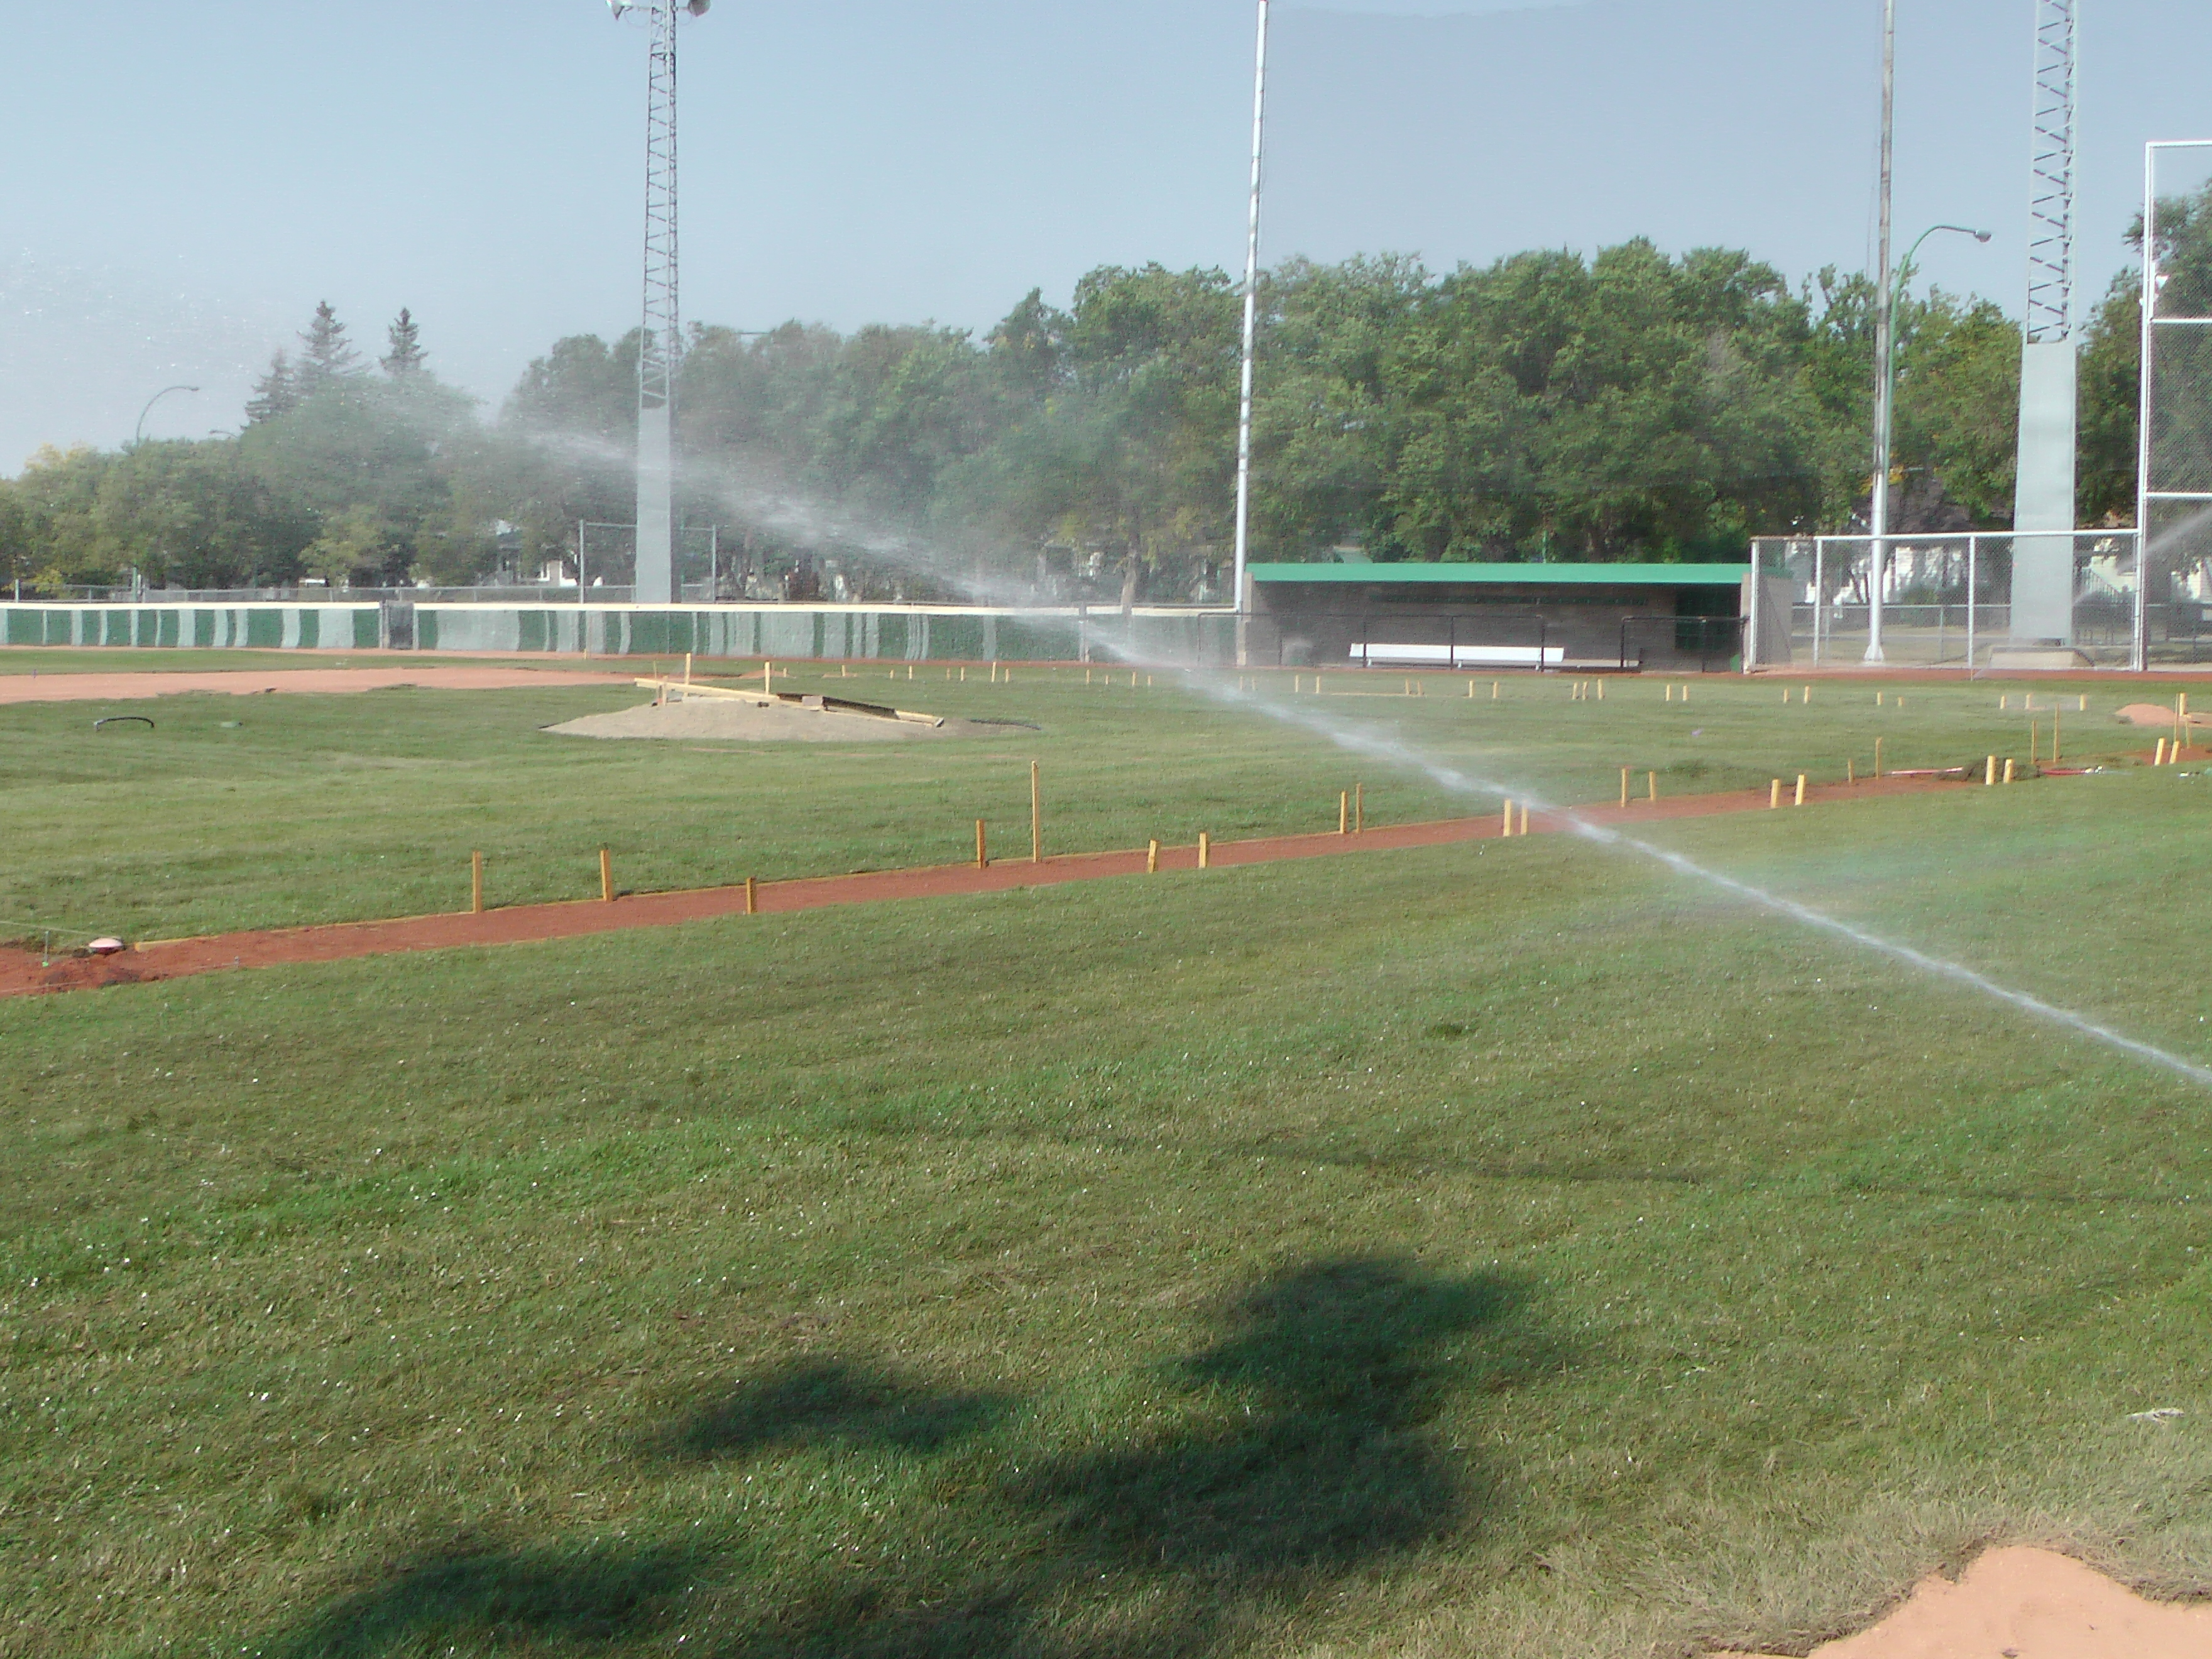 Sept 7 & 8 2018, Optimist Park Field Renovations, sod down being watered - Image 6